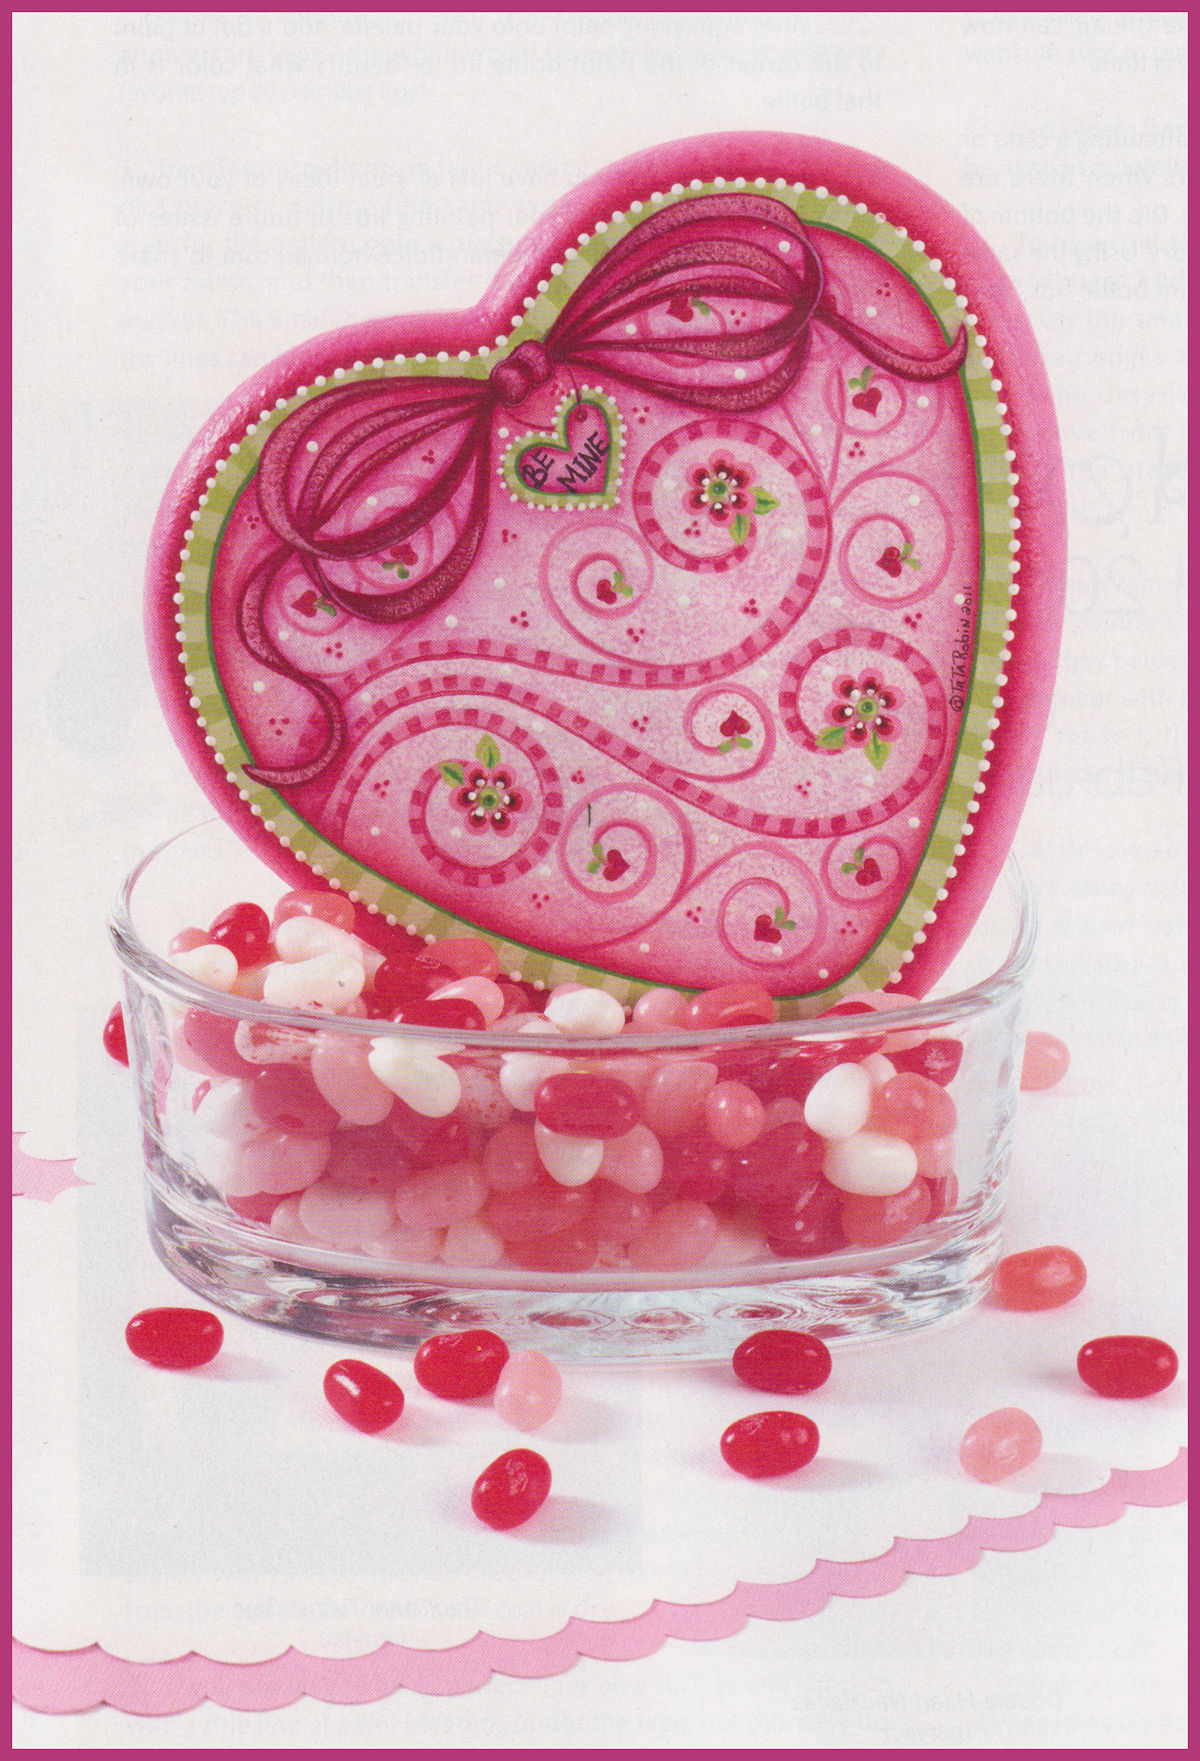 glass-heart-bowl-painted-16161000-rm.jpg